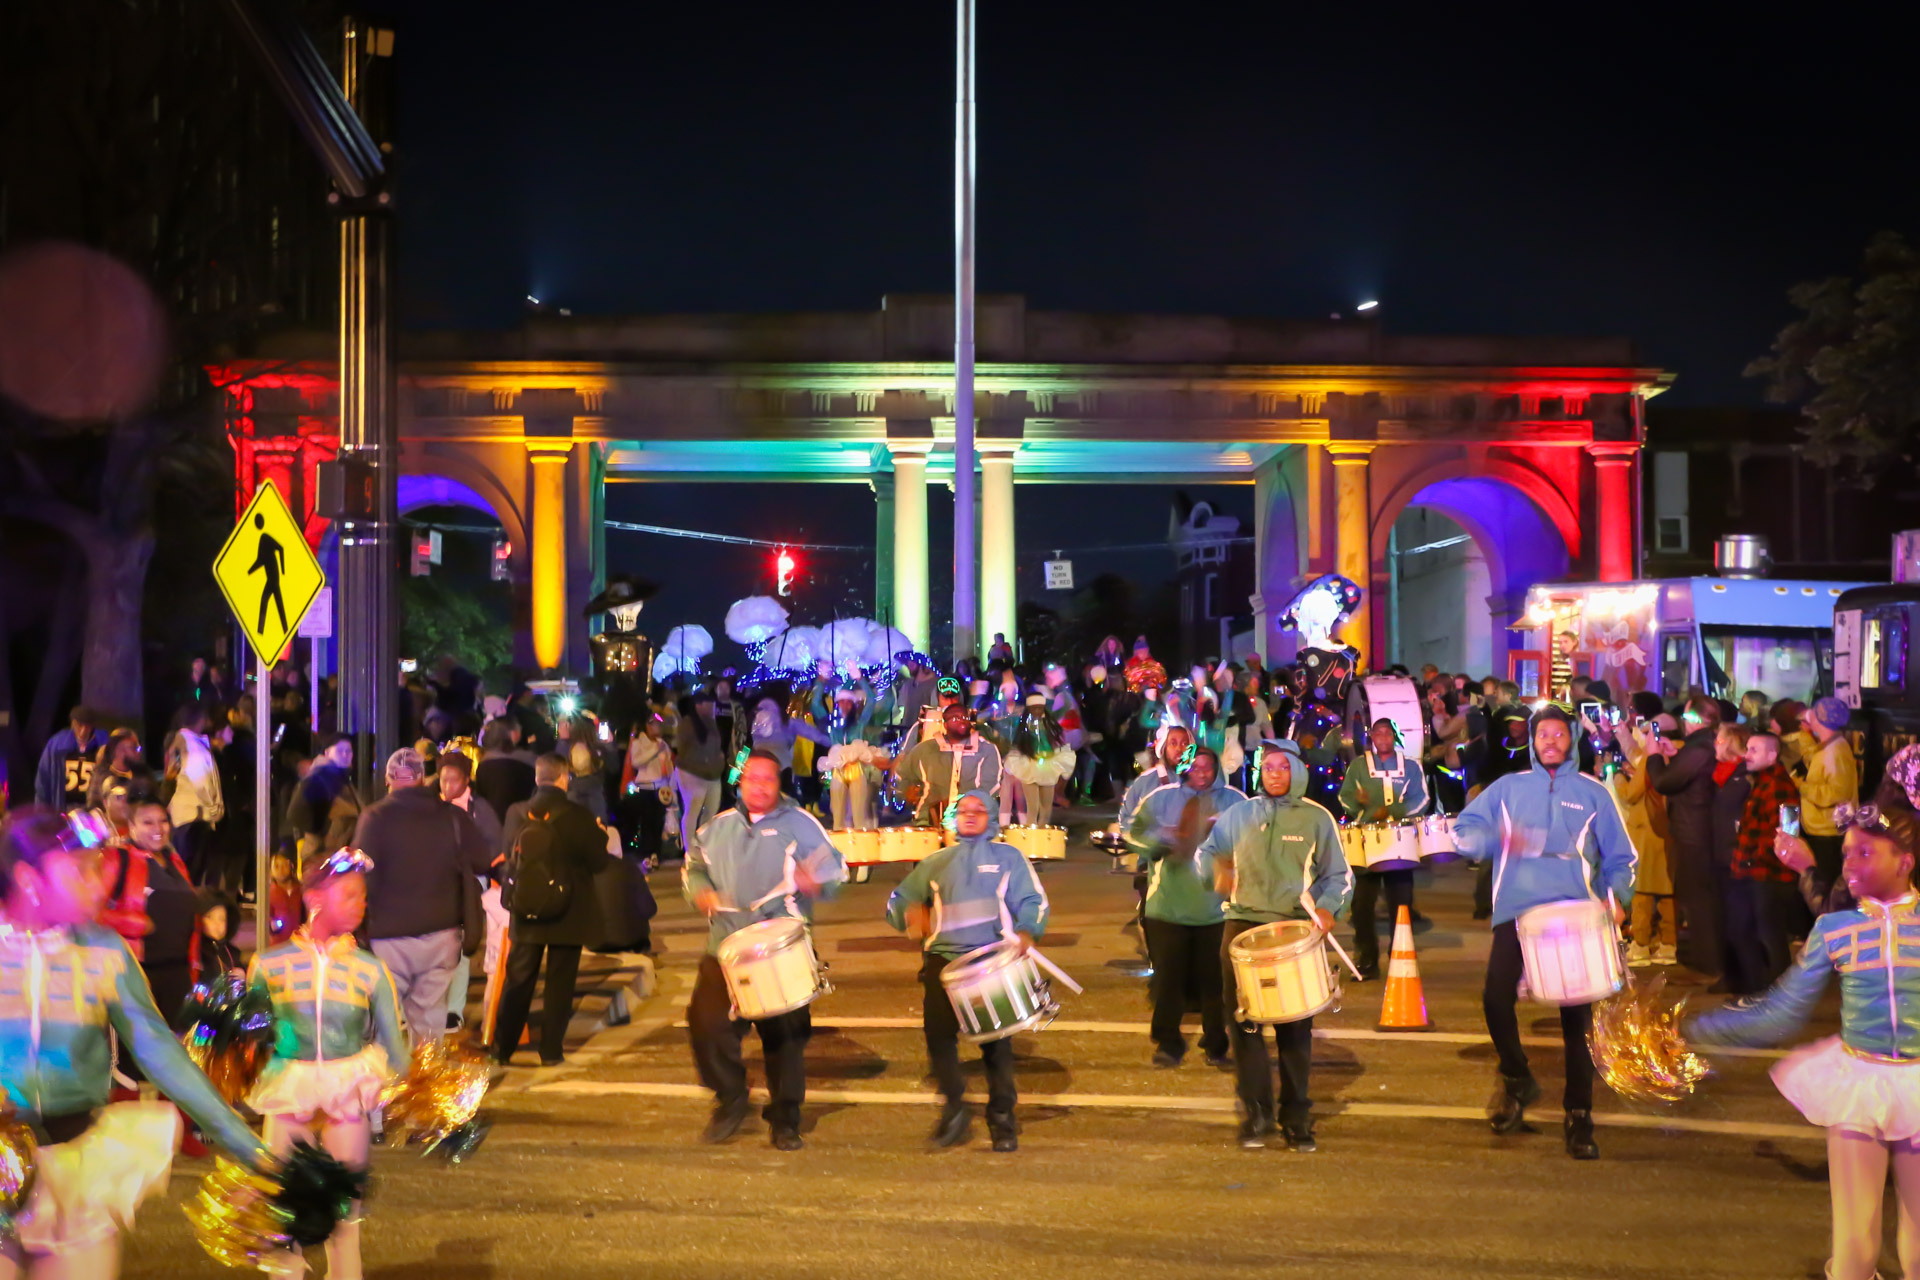 Arches & Access parade kick off